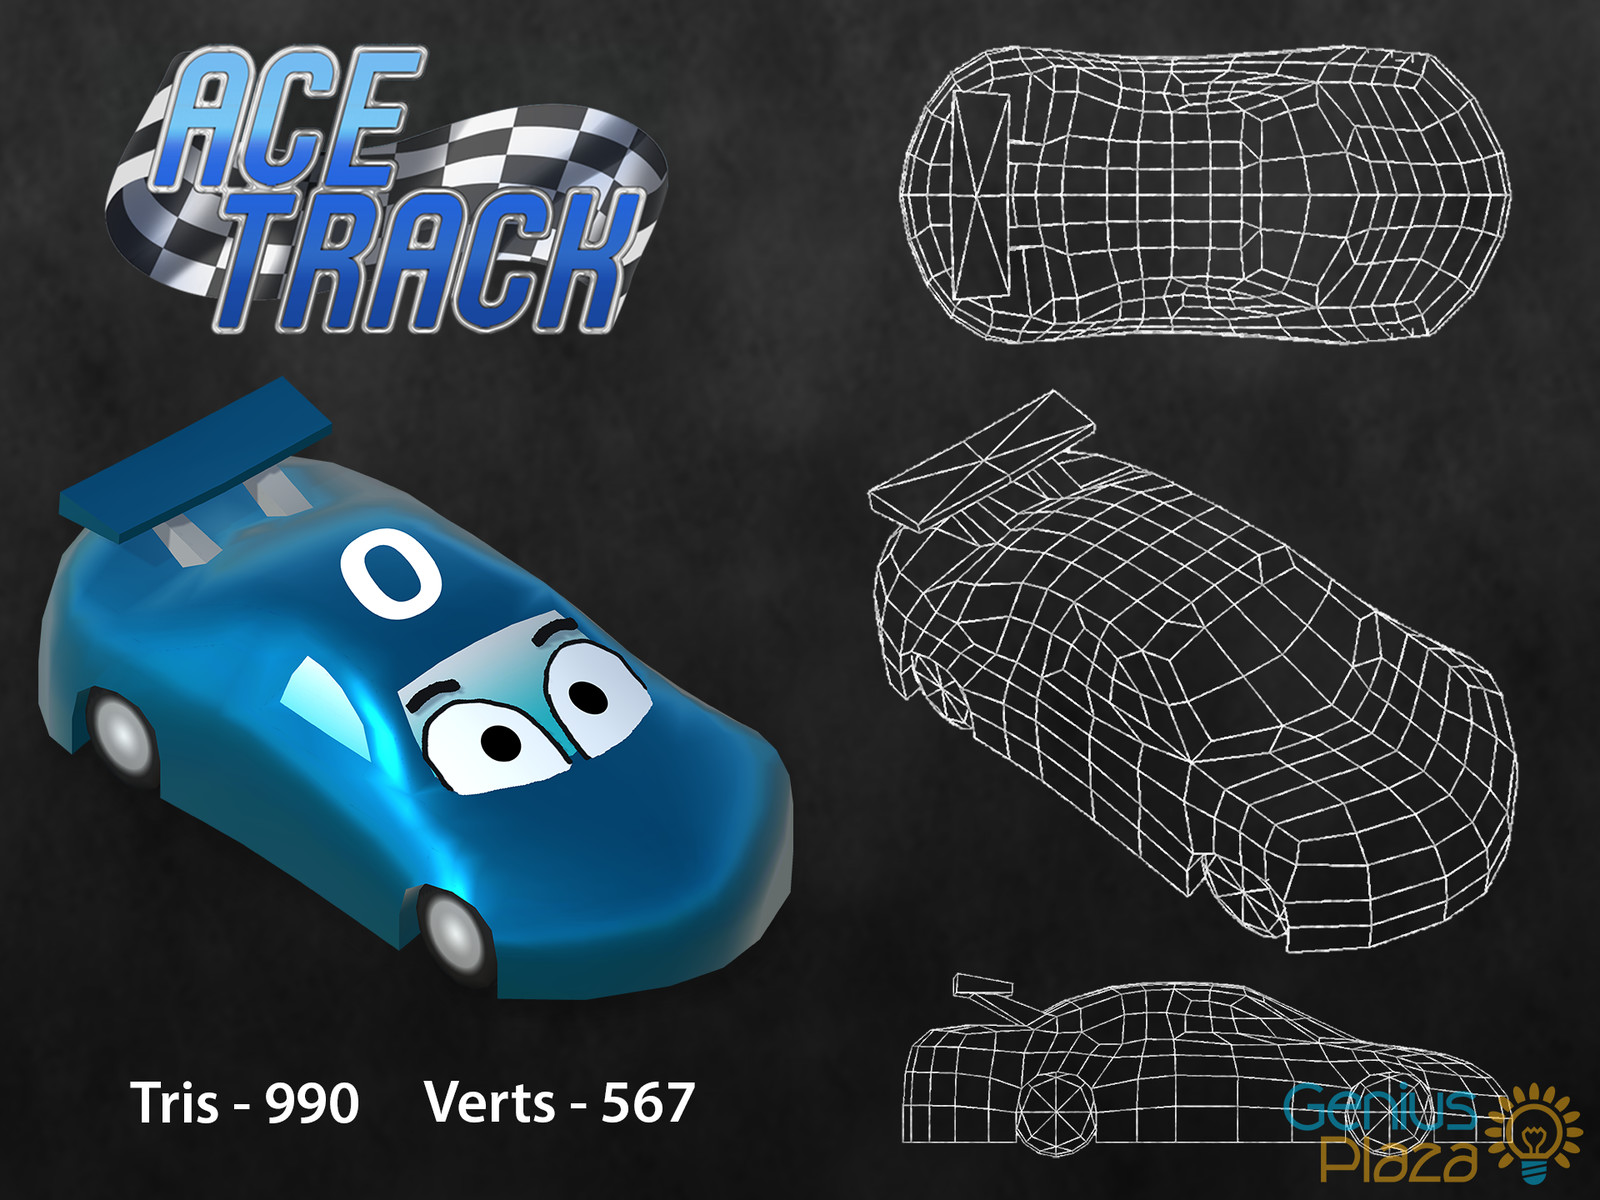 A model breakdown for the car character from AceTrack. A racing game where players answer questions from educational resources to get ahead of their competition on the track.